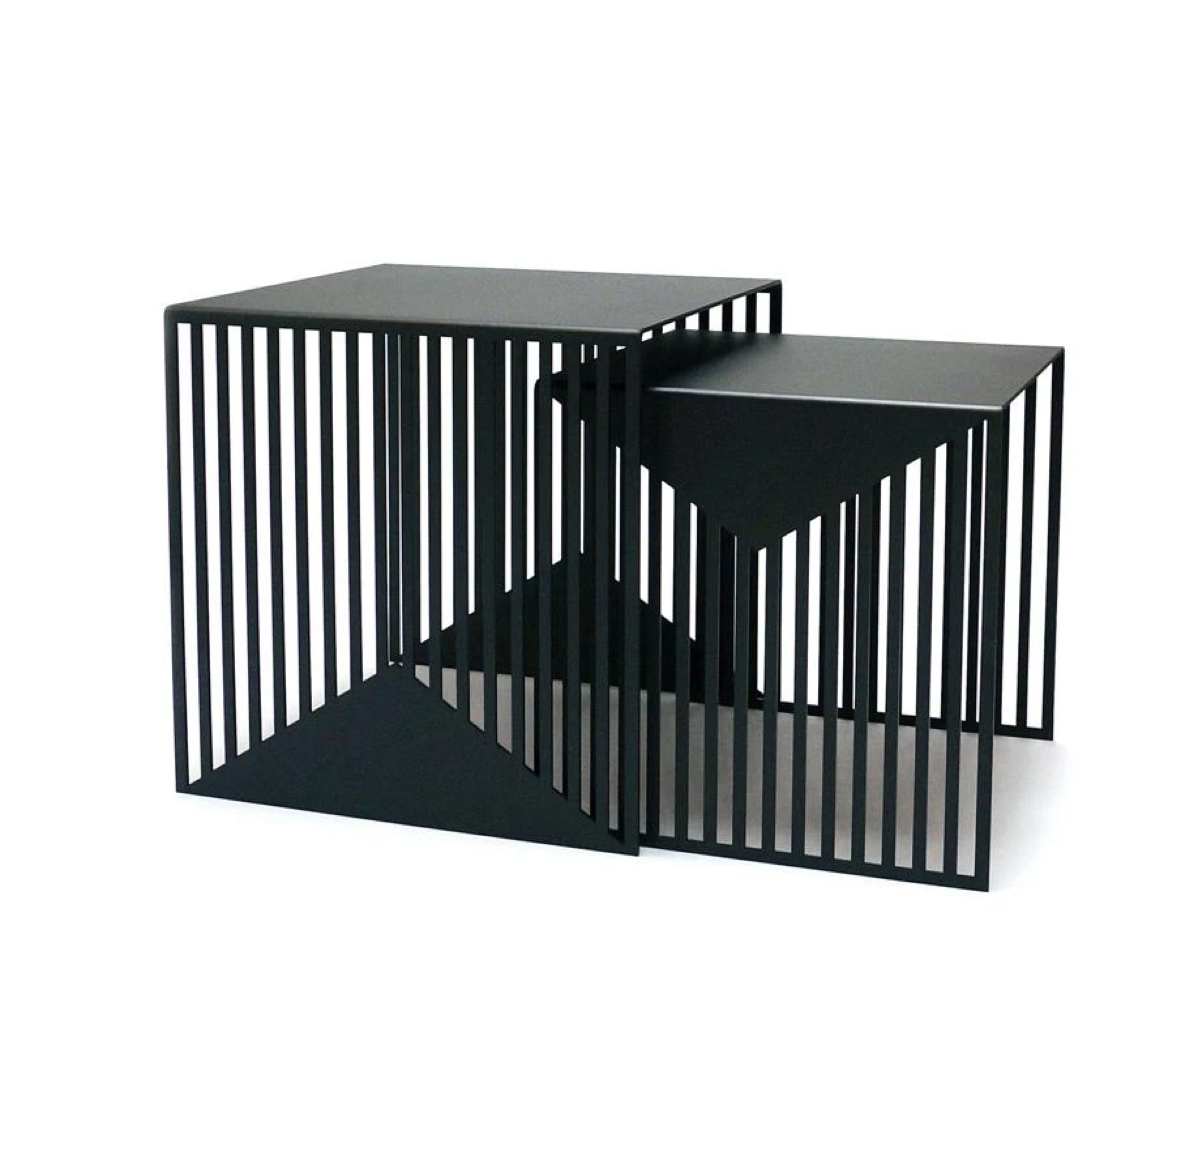 Zick Zack Side Tables - Graphic lines. Each table design is laser-cut from a single sheet. The graphic nature of the negative spaces cut into the legs in light & shadow to create varying geometric patterns depending on the viewer's position.   | Matter of Stuff